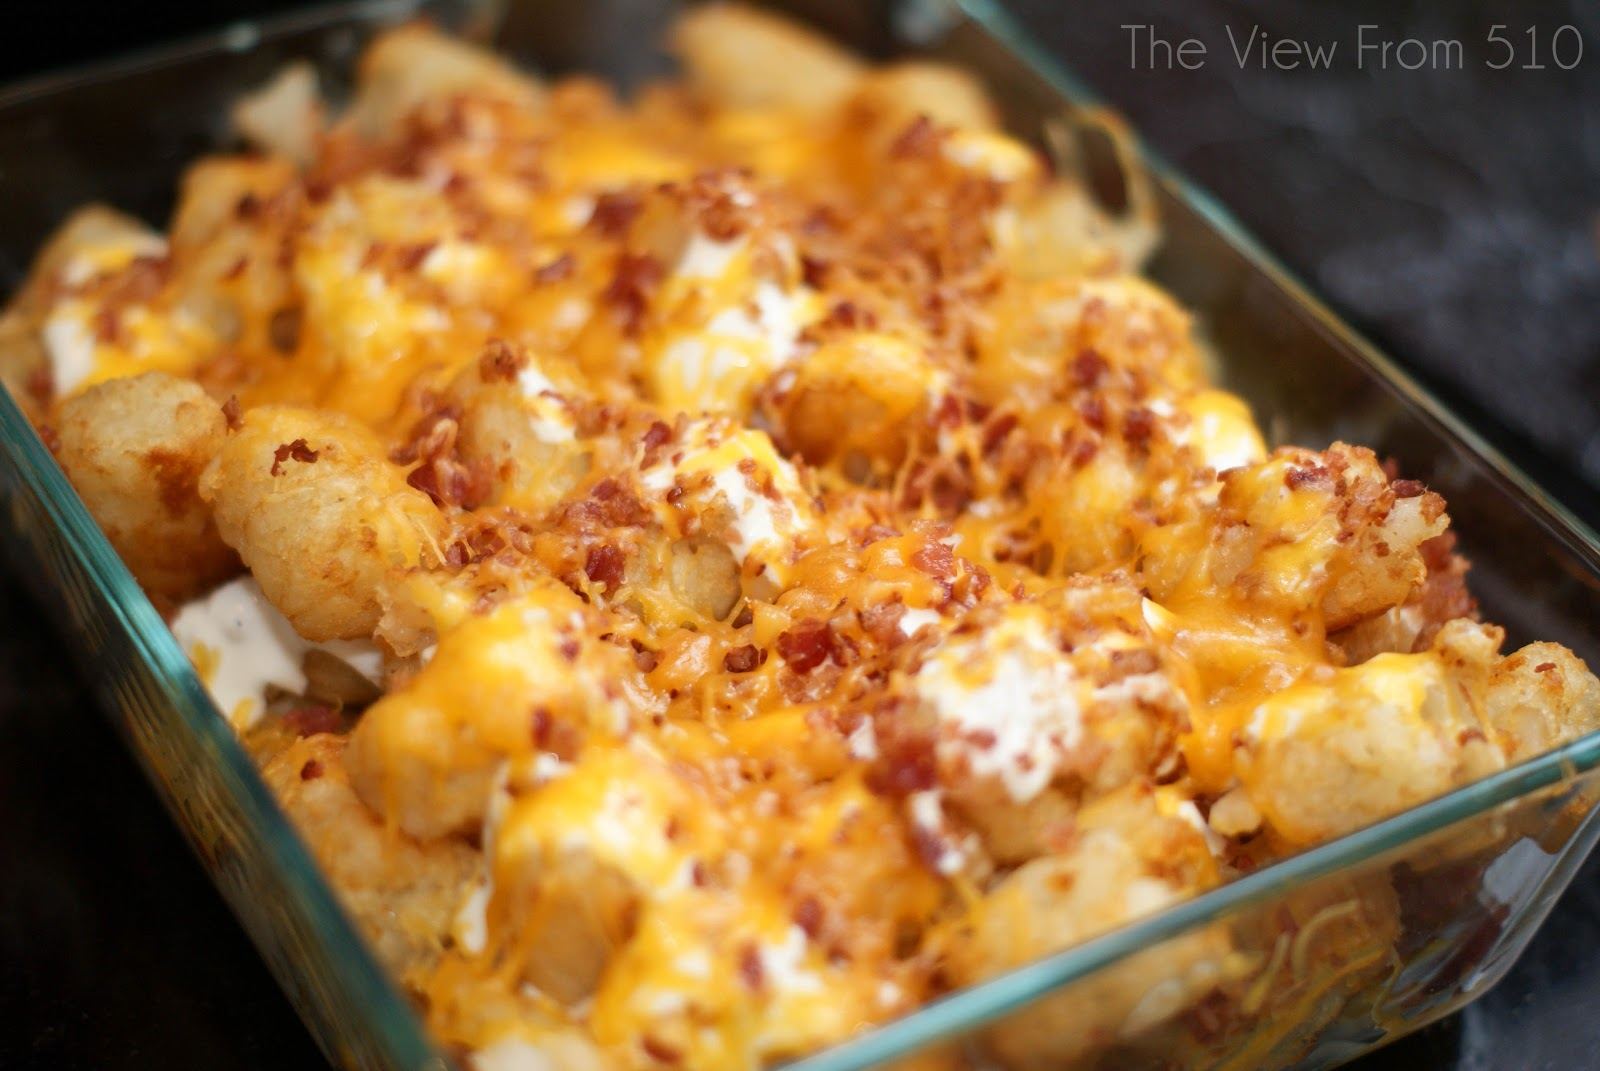 bacon tatertot casserole ingredients 1 bag frozen tatertots sauce 1